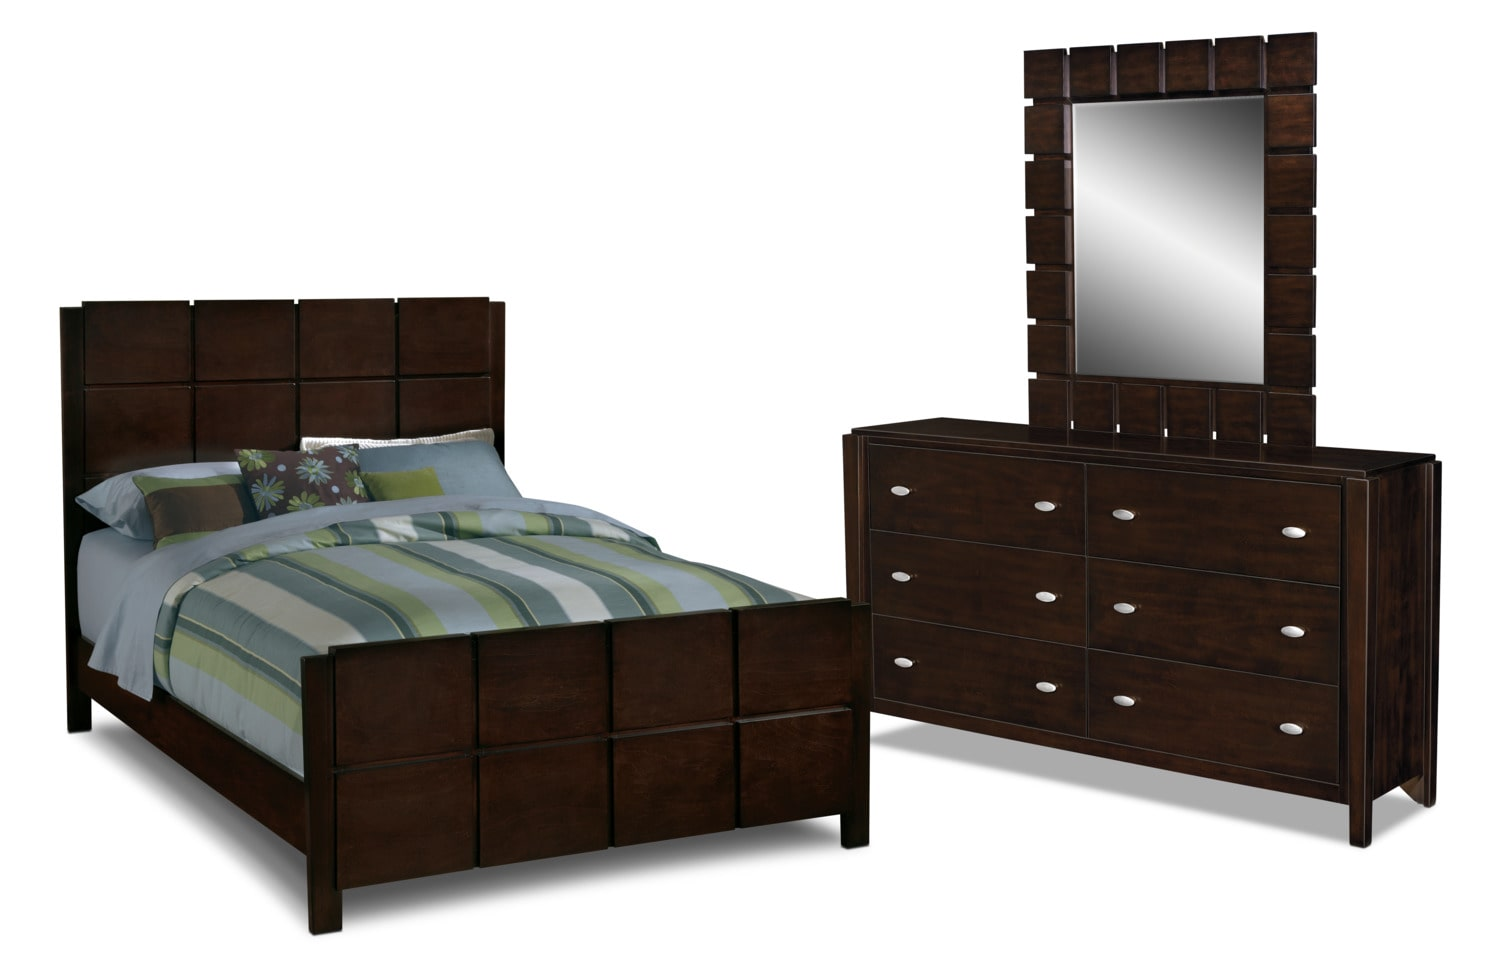 Bedroom Furniture   Mosaic 5 Piece King Bedroom Set   Dark Brown